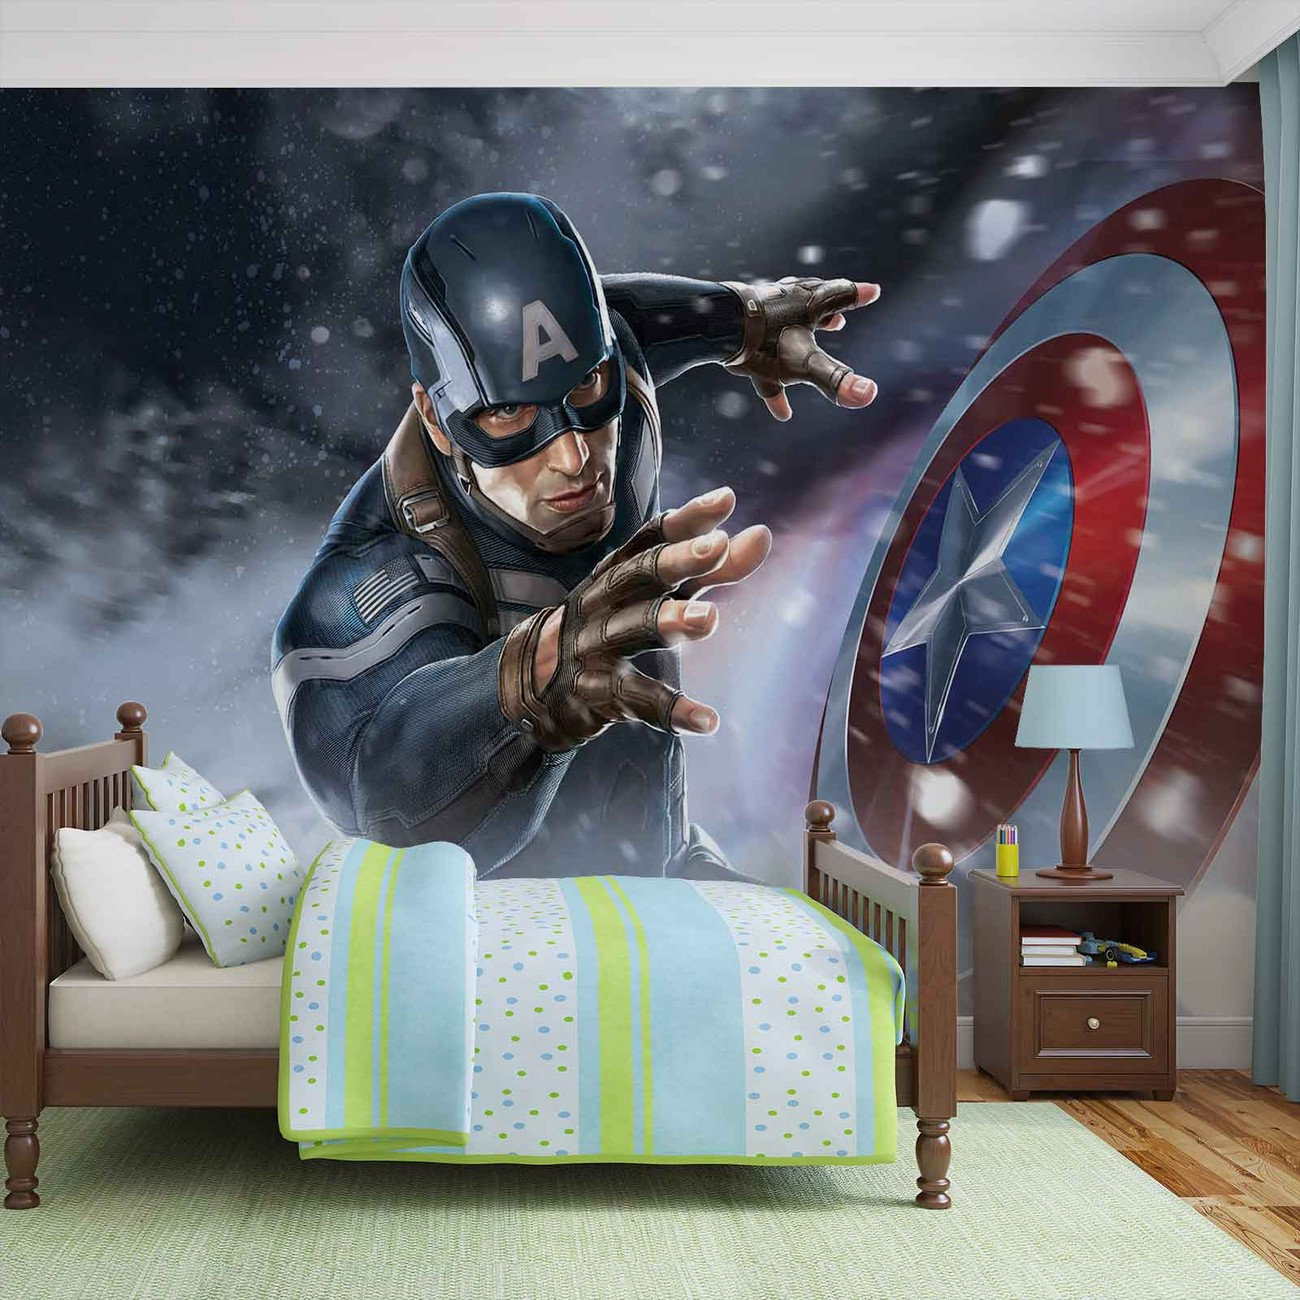 Avengers captain america wall paper mural buy at for Avengers wall mural uk